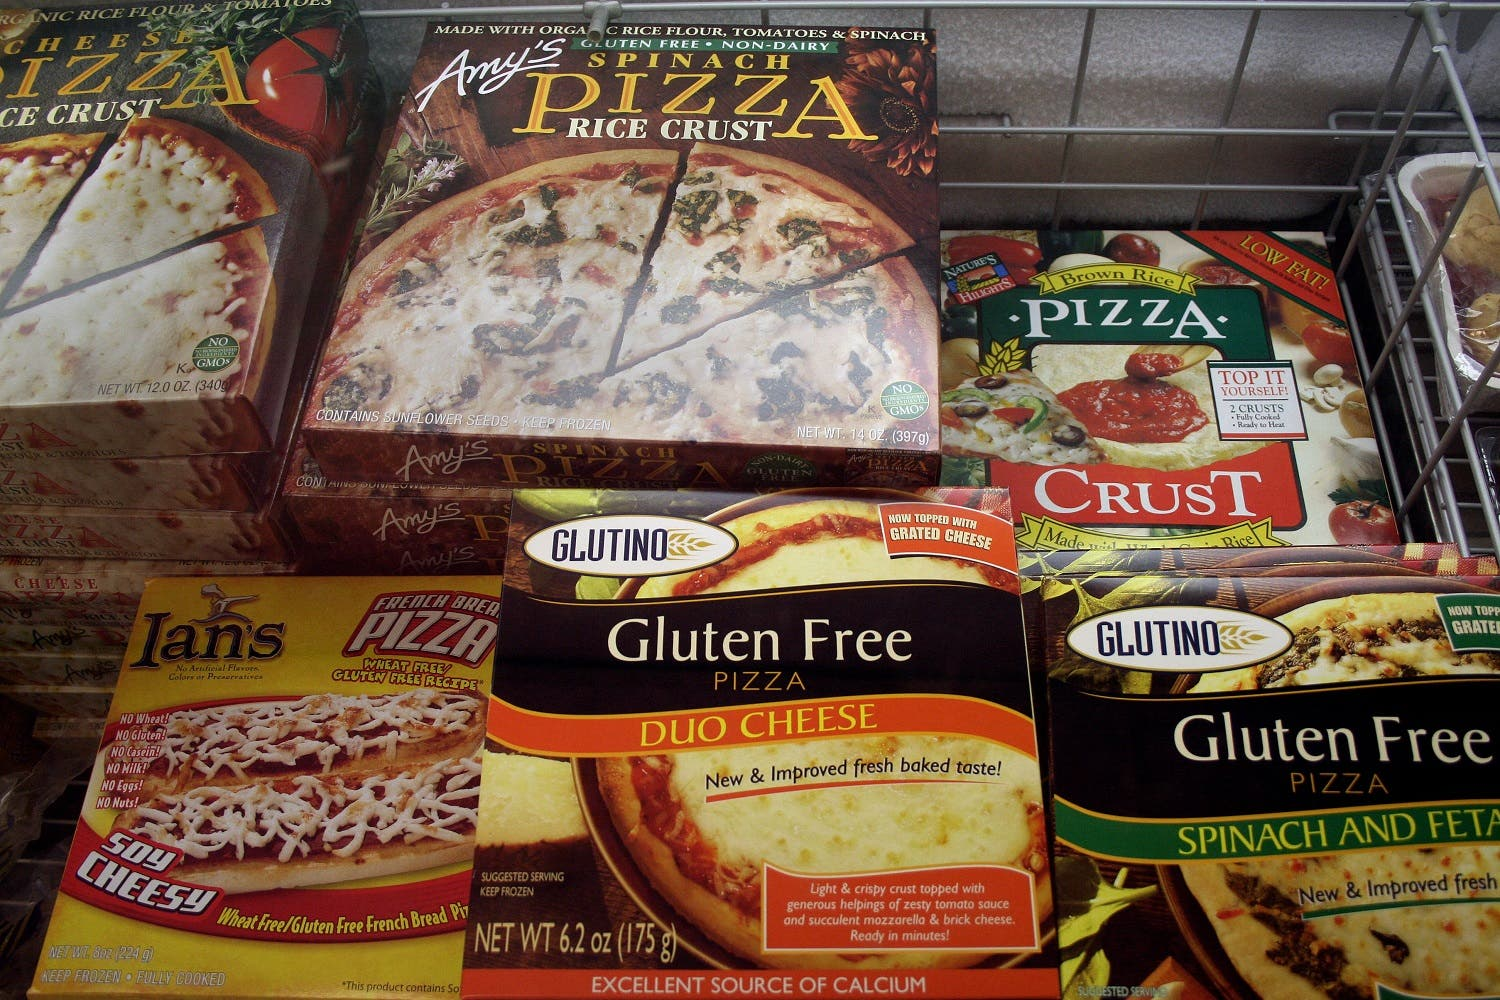 Millions of people are buying gluten free foods because they say they make them feel better, even if they don't have a wheat allergy. (AP)